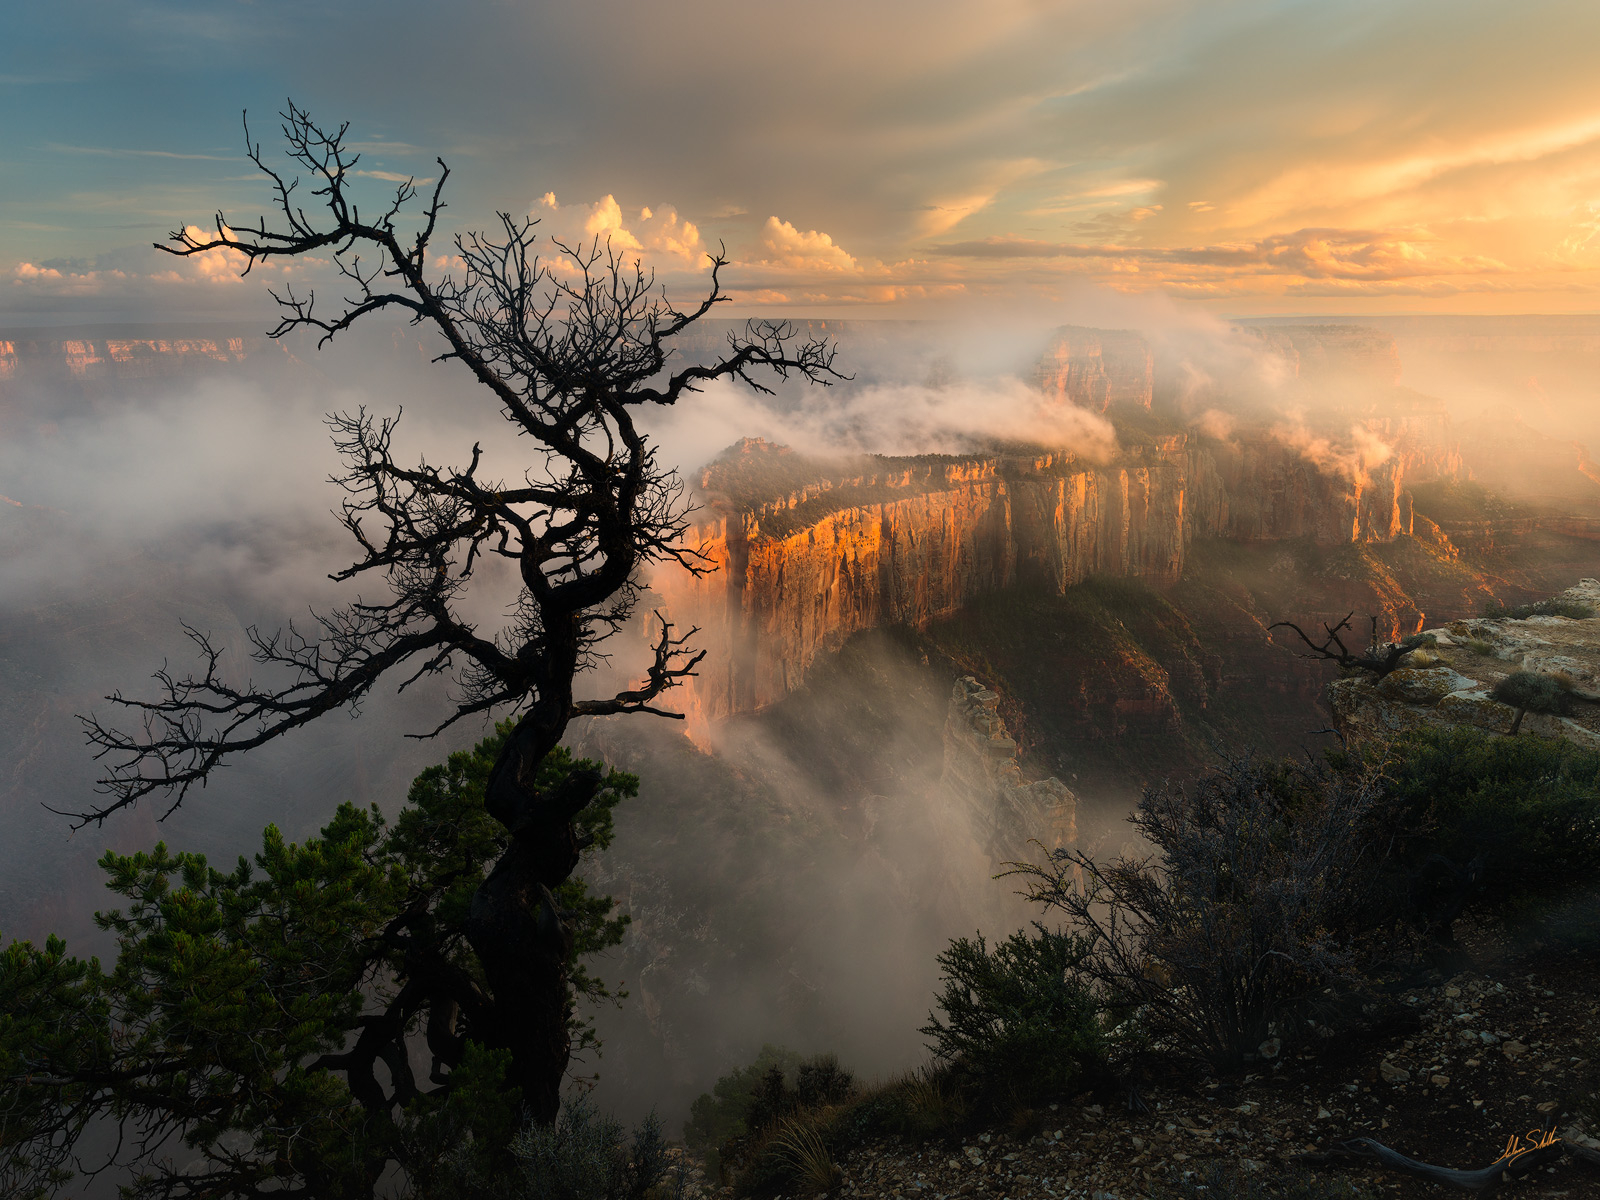 Grand Canyon, Cape Royal, Mist, North Rim, Wotans Throne, Monsoon, Storms, Tree, Clouds, photo